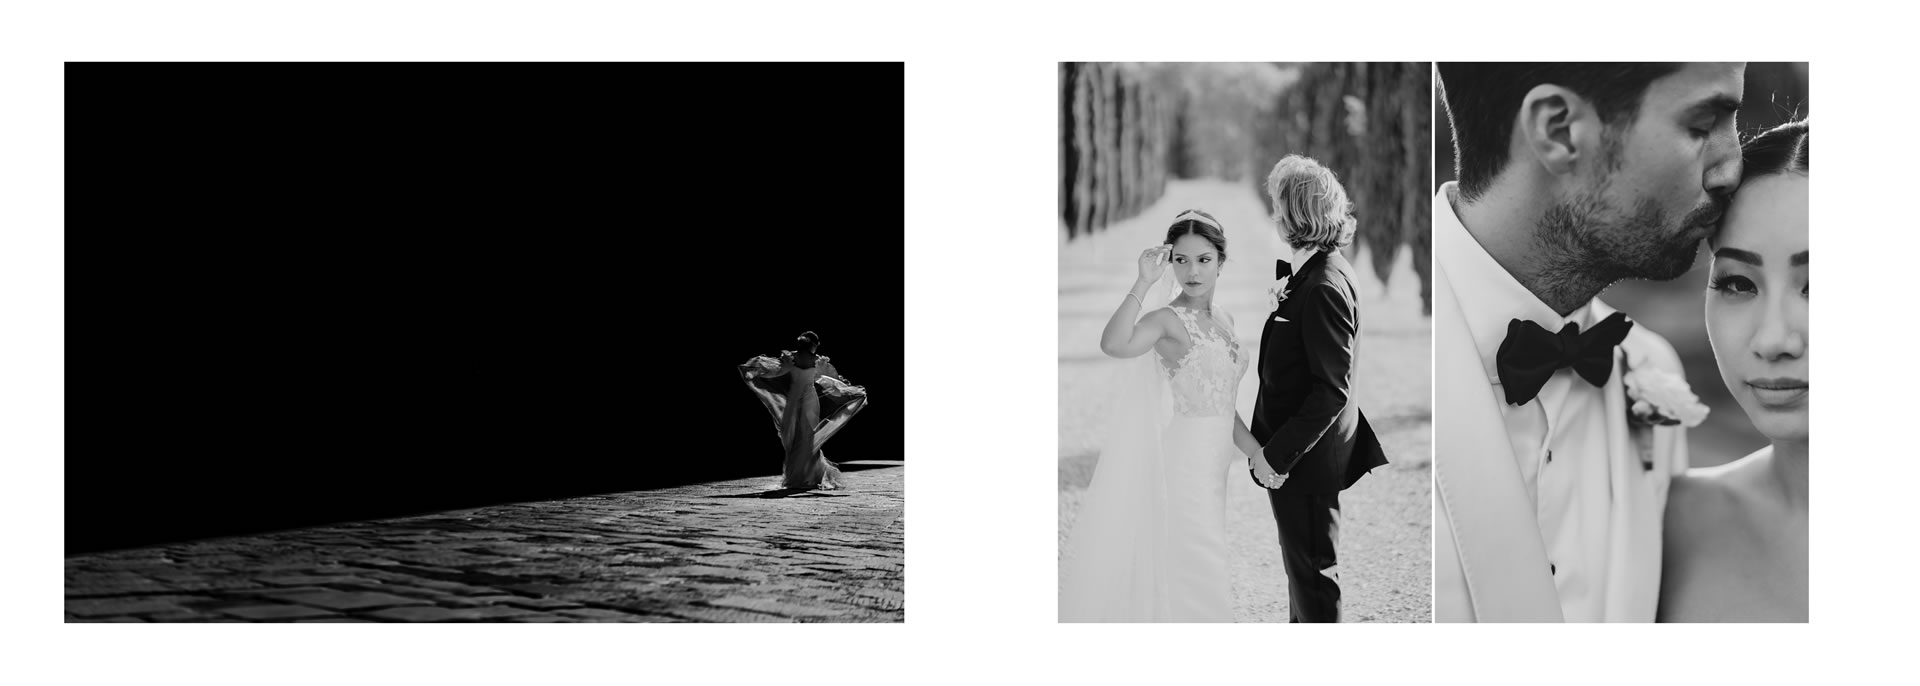 - 37 :: BEST OF 2018 WEDDING: A COLLECTION TO TELL ONE YEAR STORY :: Luxury wedding photography - 36 ::  - 37